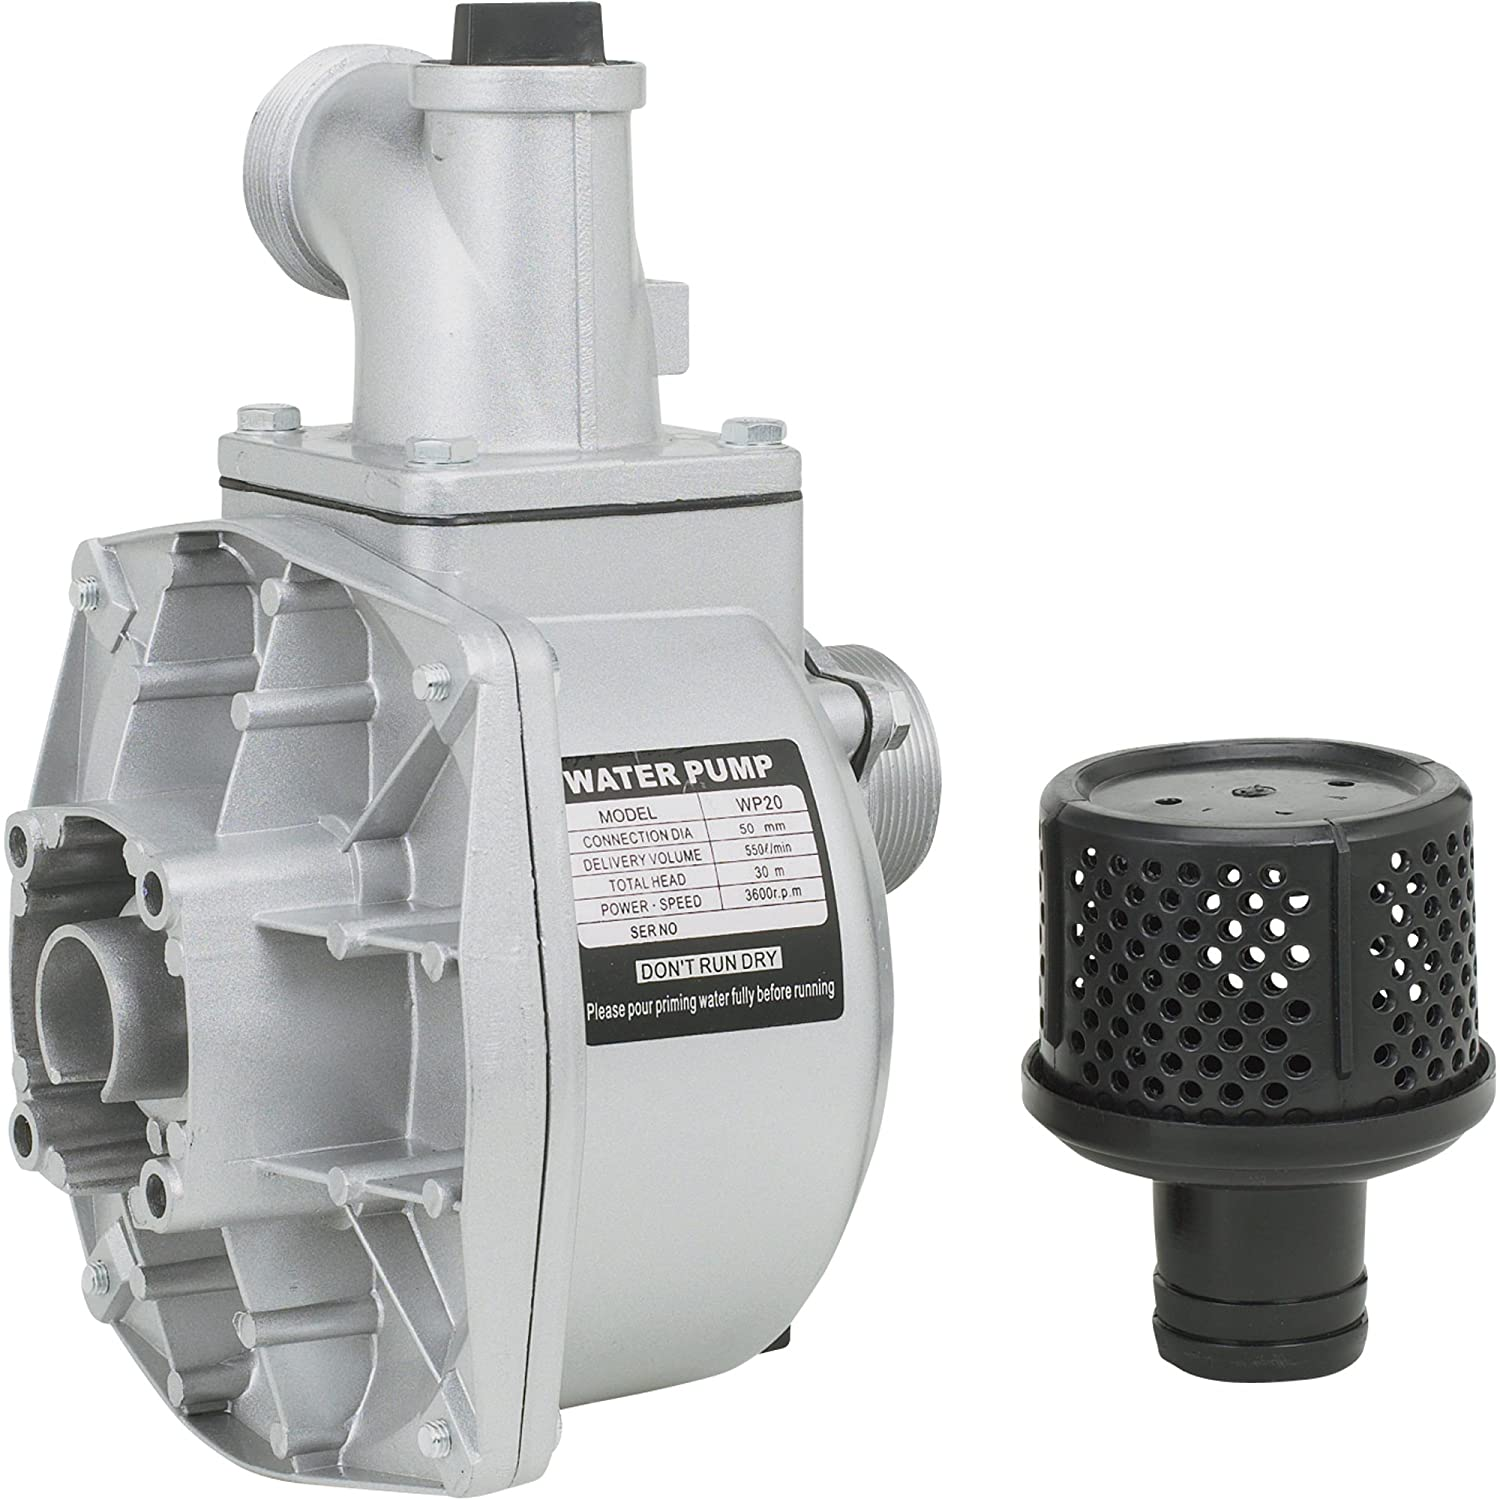 2in Ports for Threaded Shafts 7,860 GPH Semi-Trash Water Pump ONLY